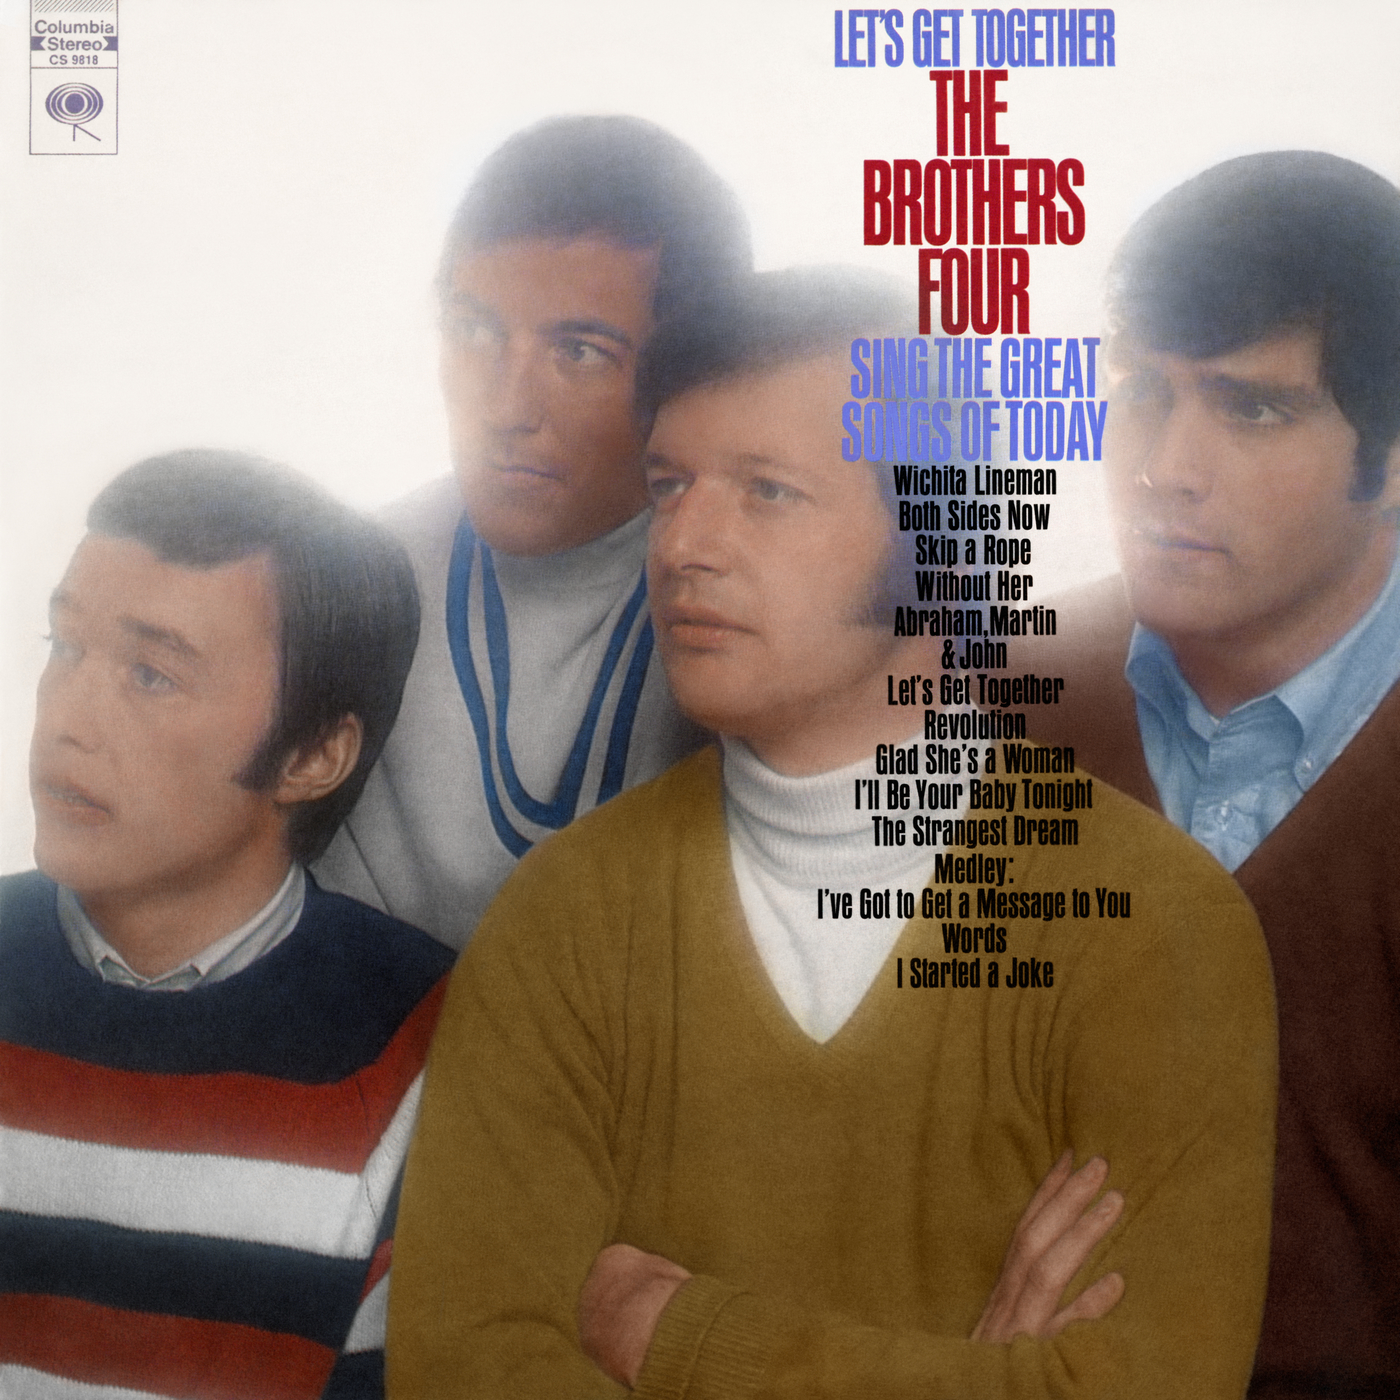 Let's Get Together - The Brothers Four